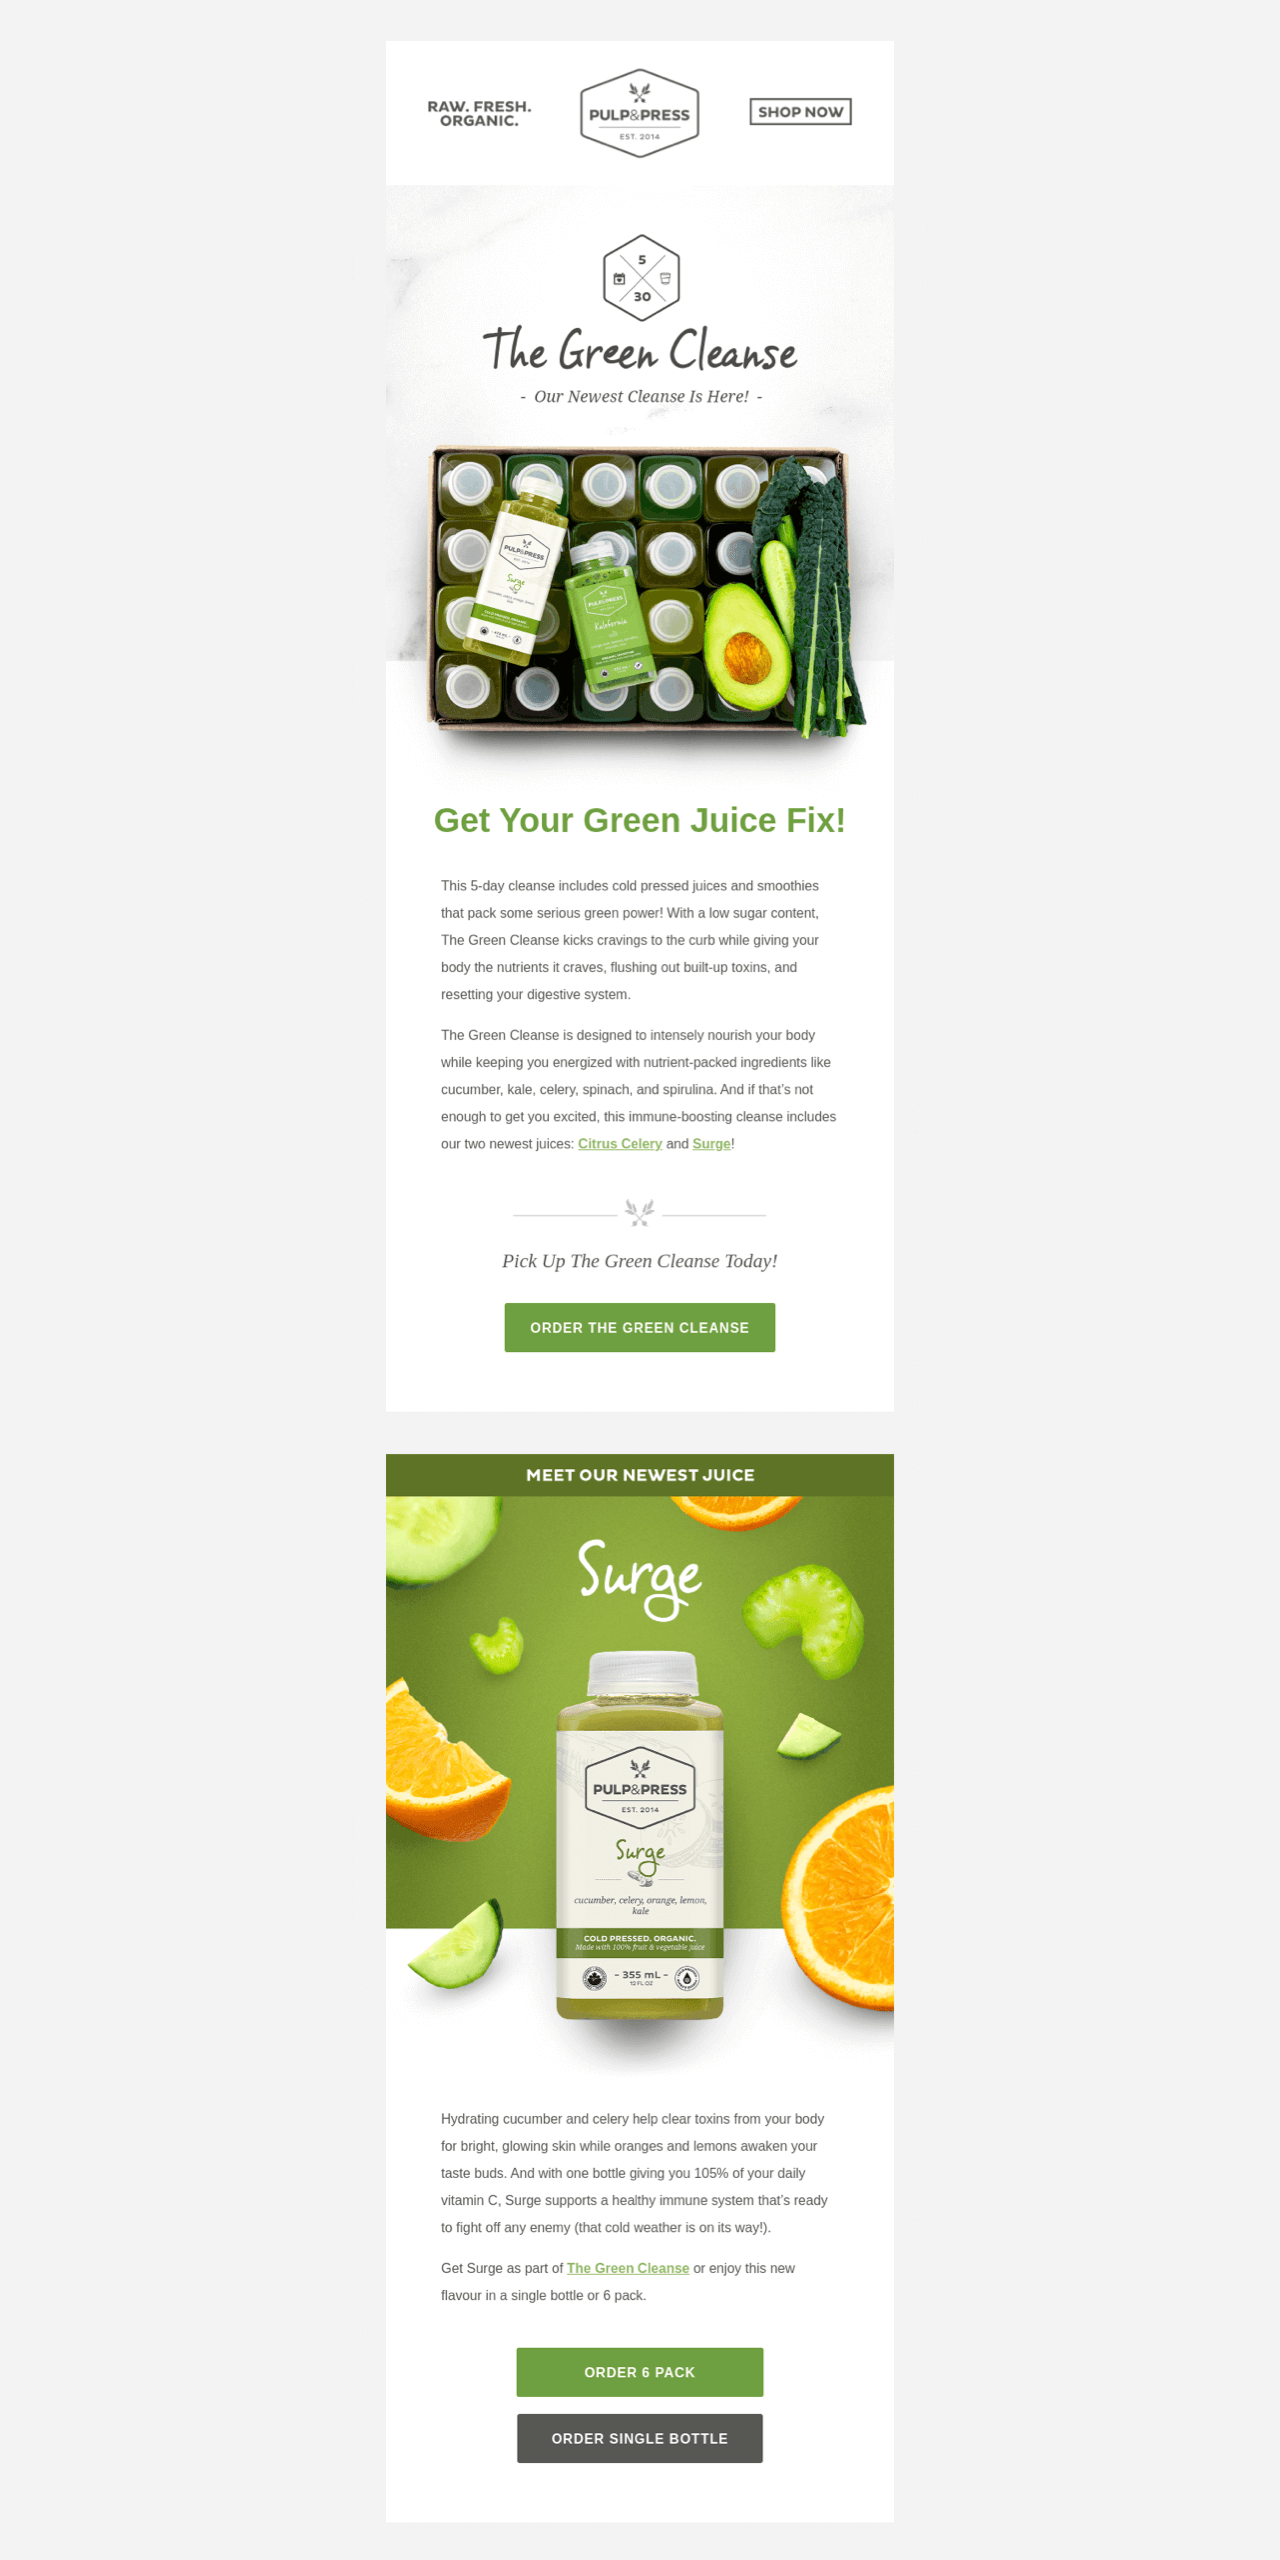 Green Cleanse launches an email marketing campaign to announce a new product